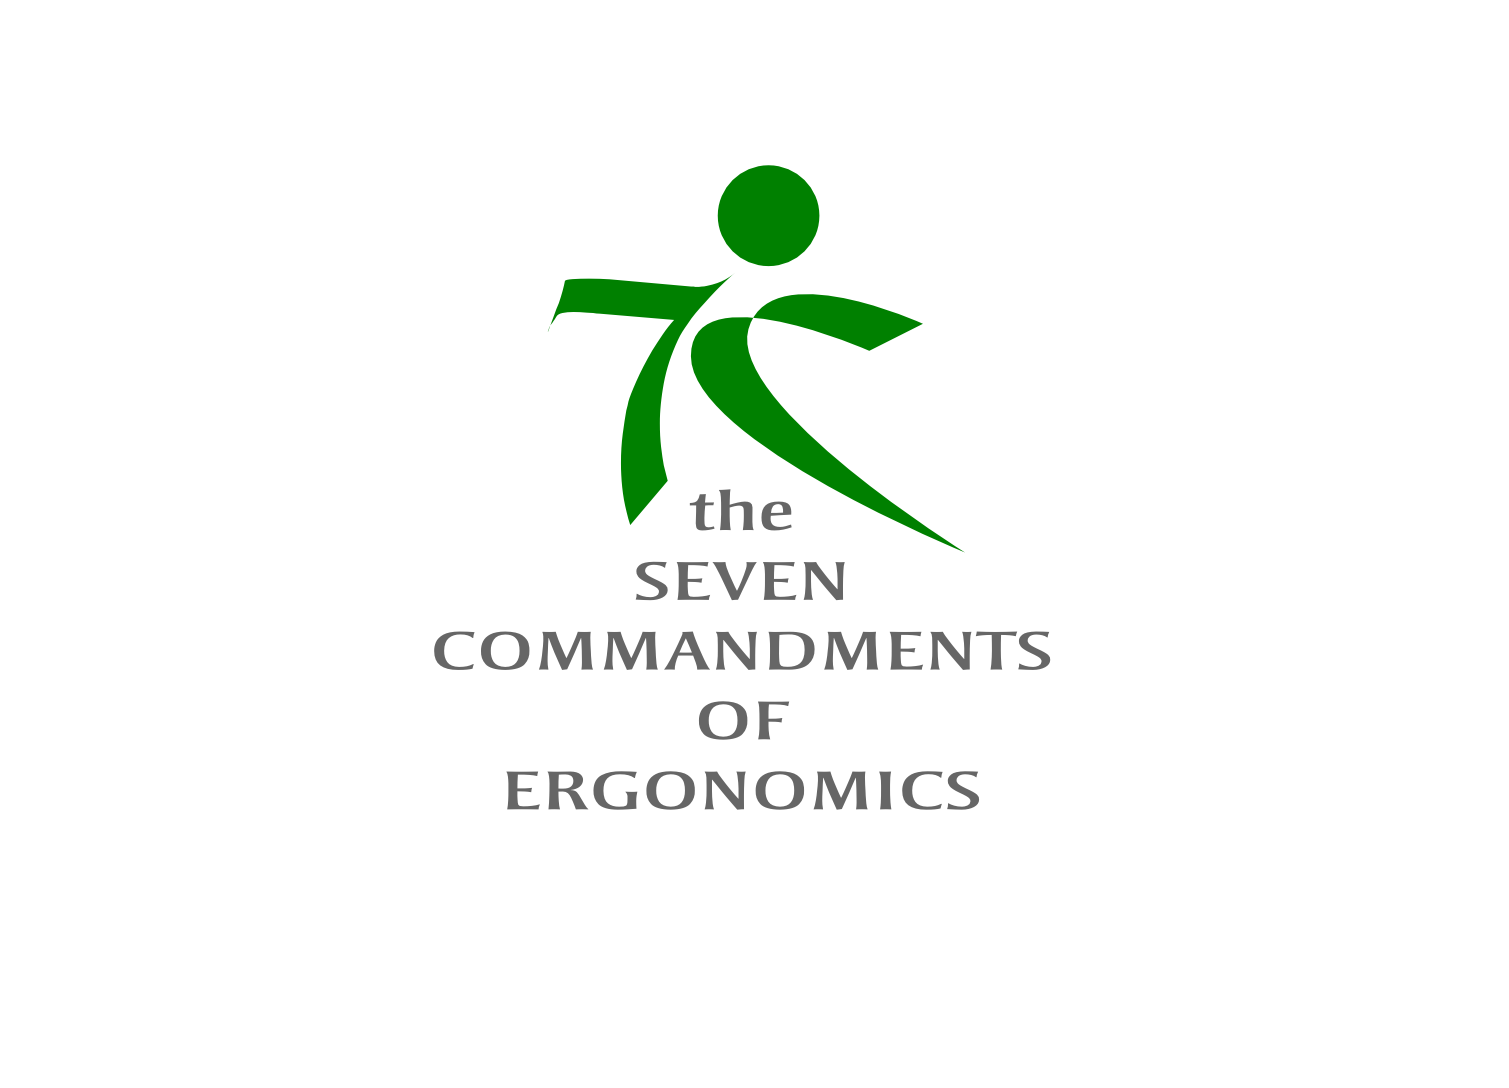 Logo Design by whoosef - Entry No. 139 in the Logo Design Contest Logo Design for Seven Commandments of Ergonomics.